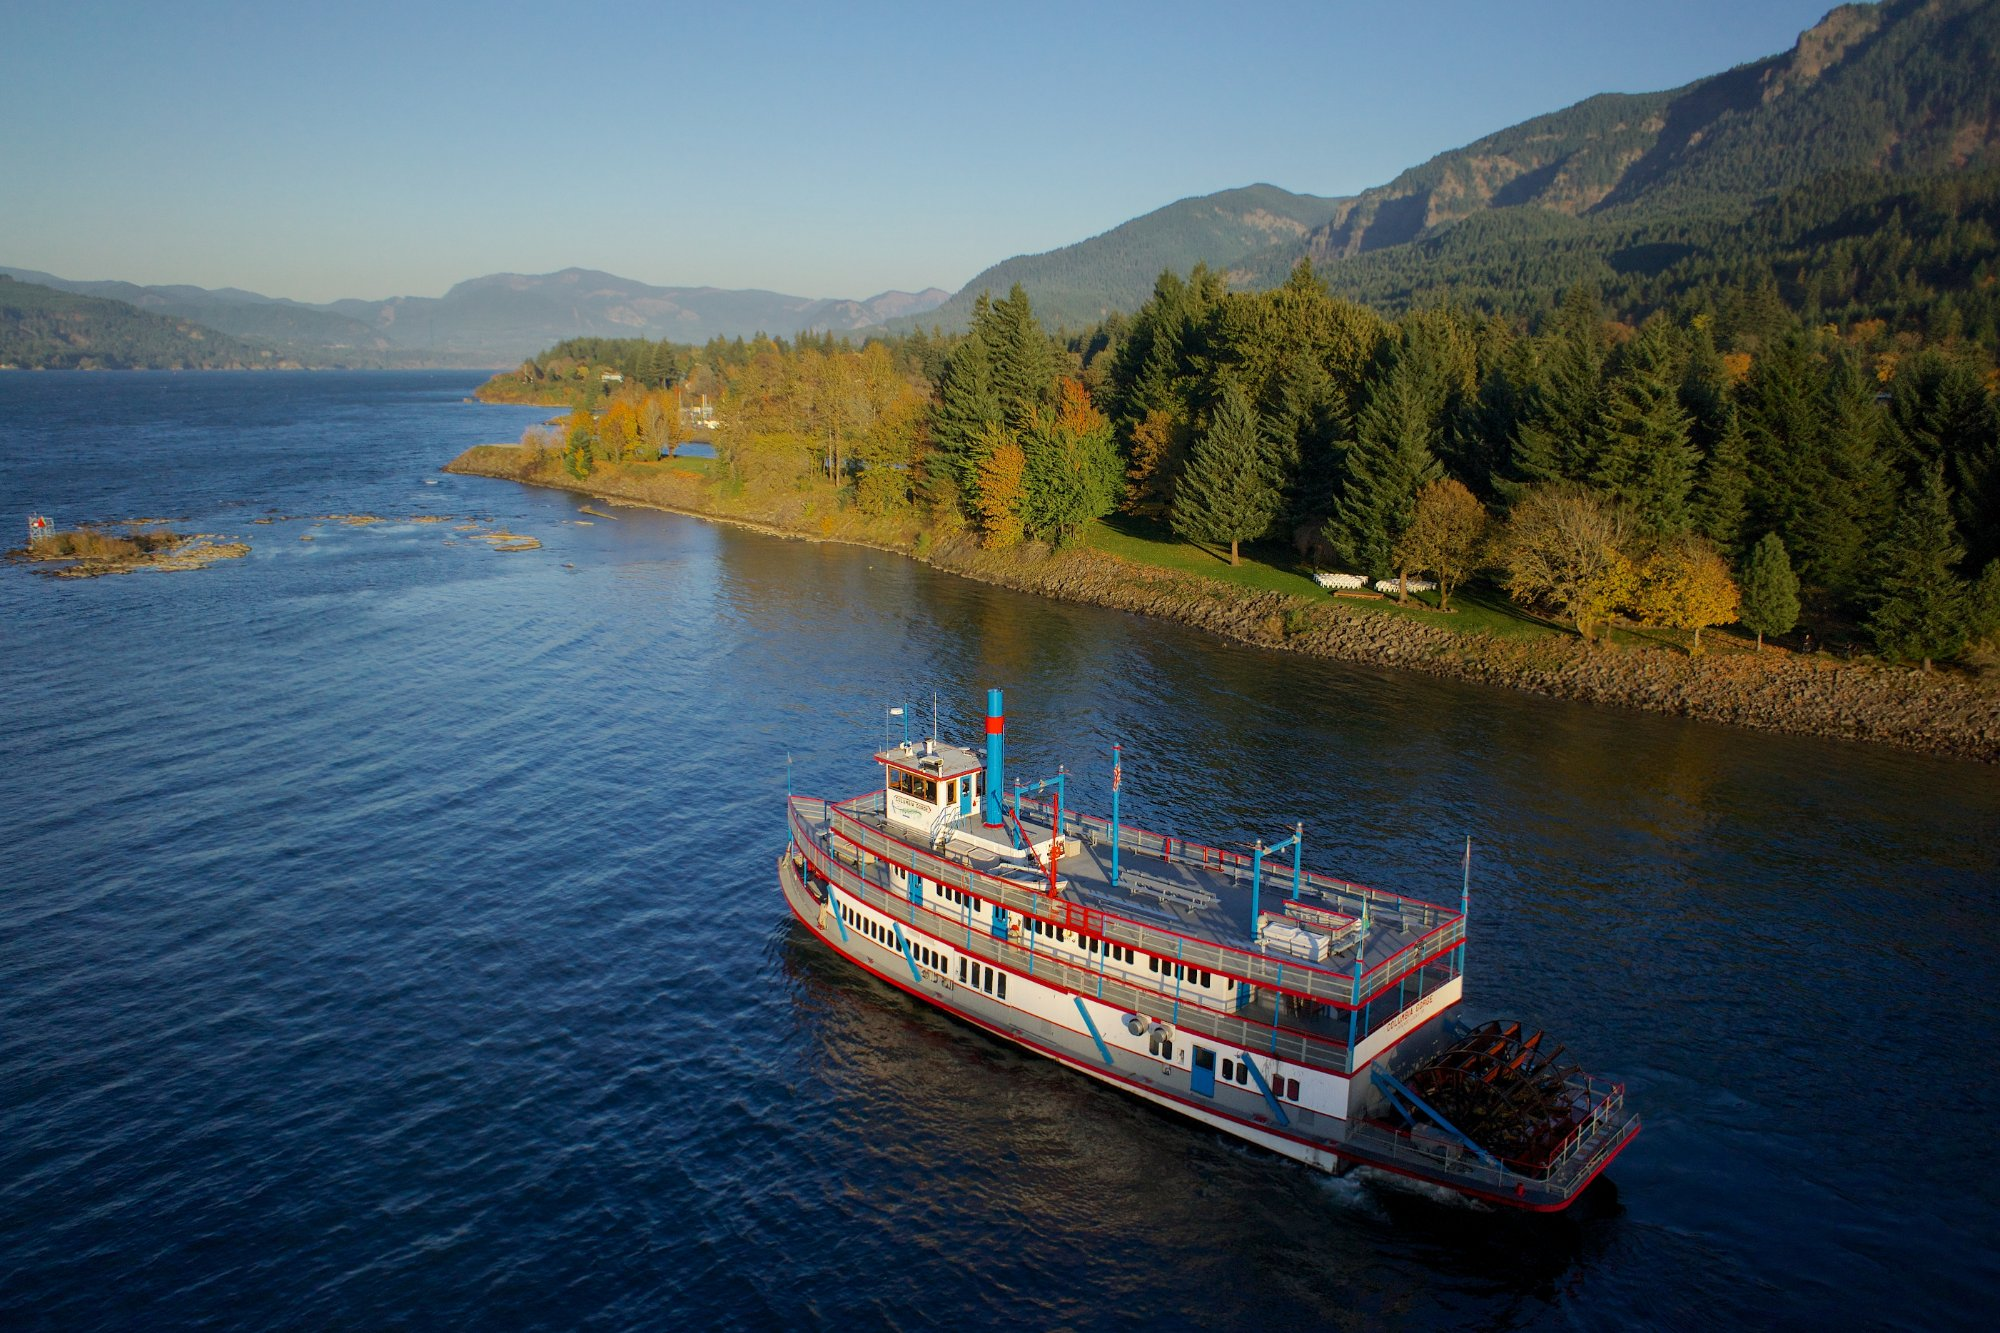 Tour Oregon S Columbia River Gorge On A Sternwheeler Cruise